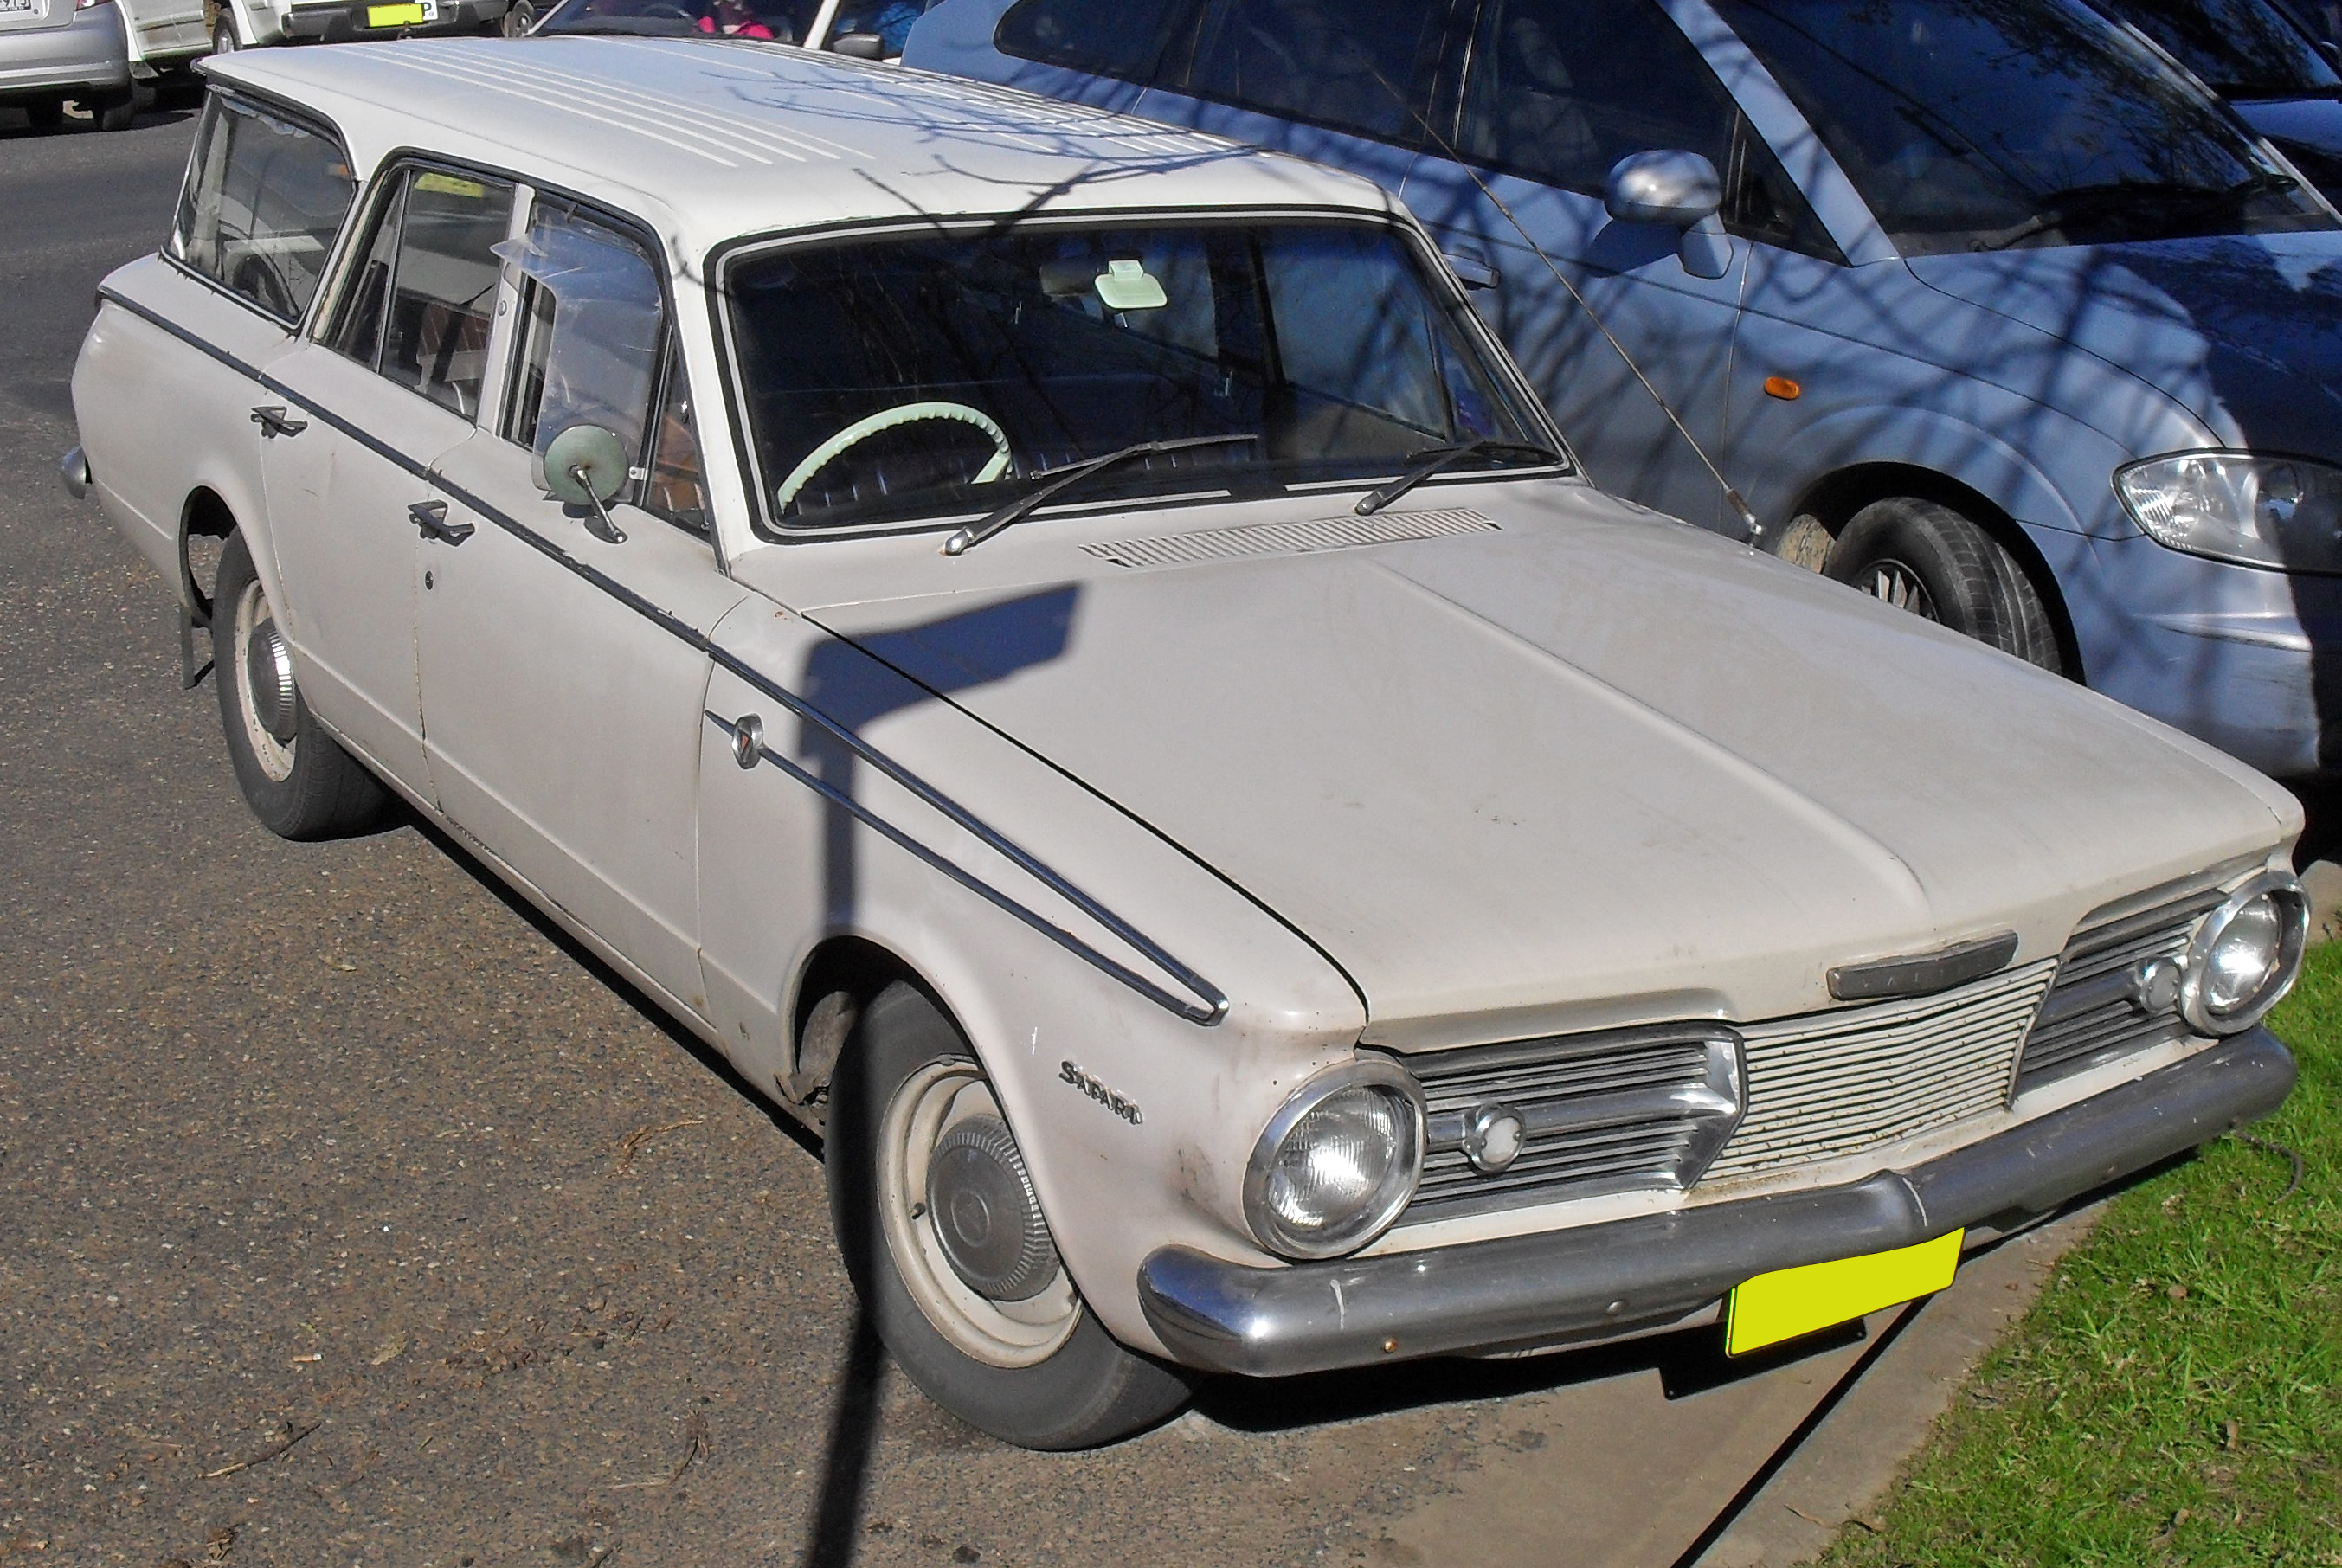 File:1965-1966 Chrysler Valiant Safari station wagon.jpg ...